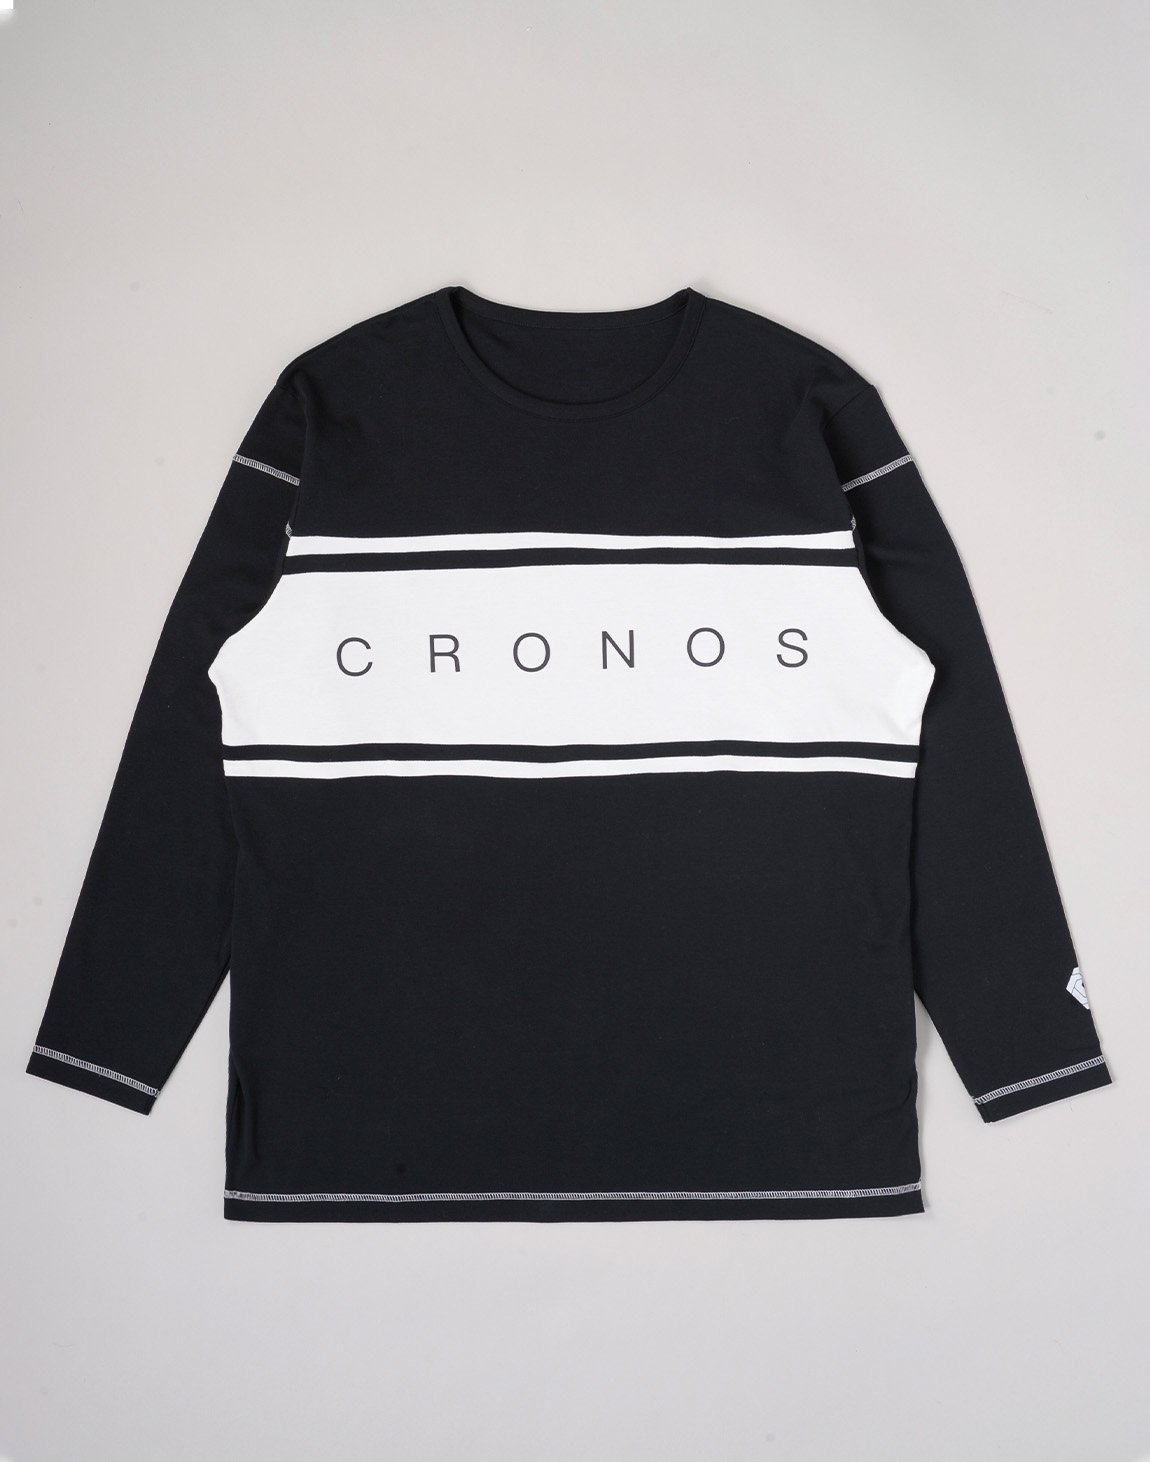 <img class='new_mark_img1' src='https://img.shop-pro.jp/img/new/icons1.gif' style='border:none;display:inline;margin:0px;padding:0px;width:auto;' />CRONOS BANNER LOGO BIG LONG SLEEVE【BLACK】